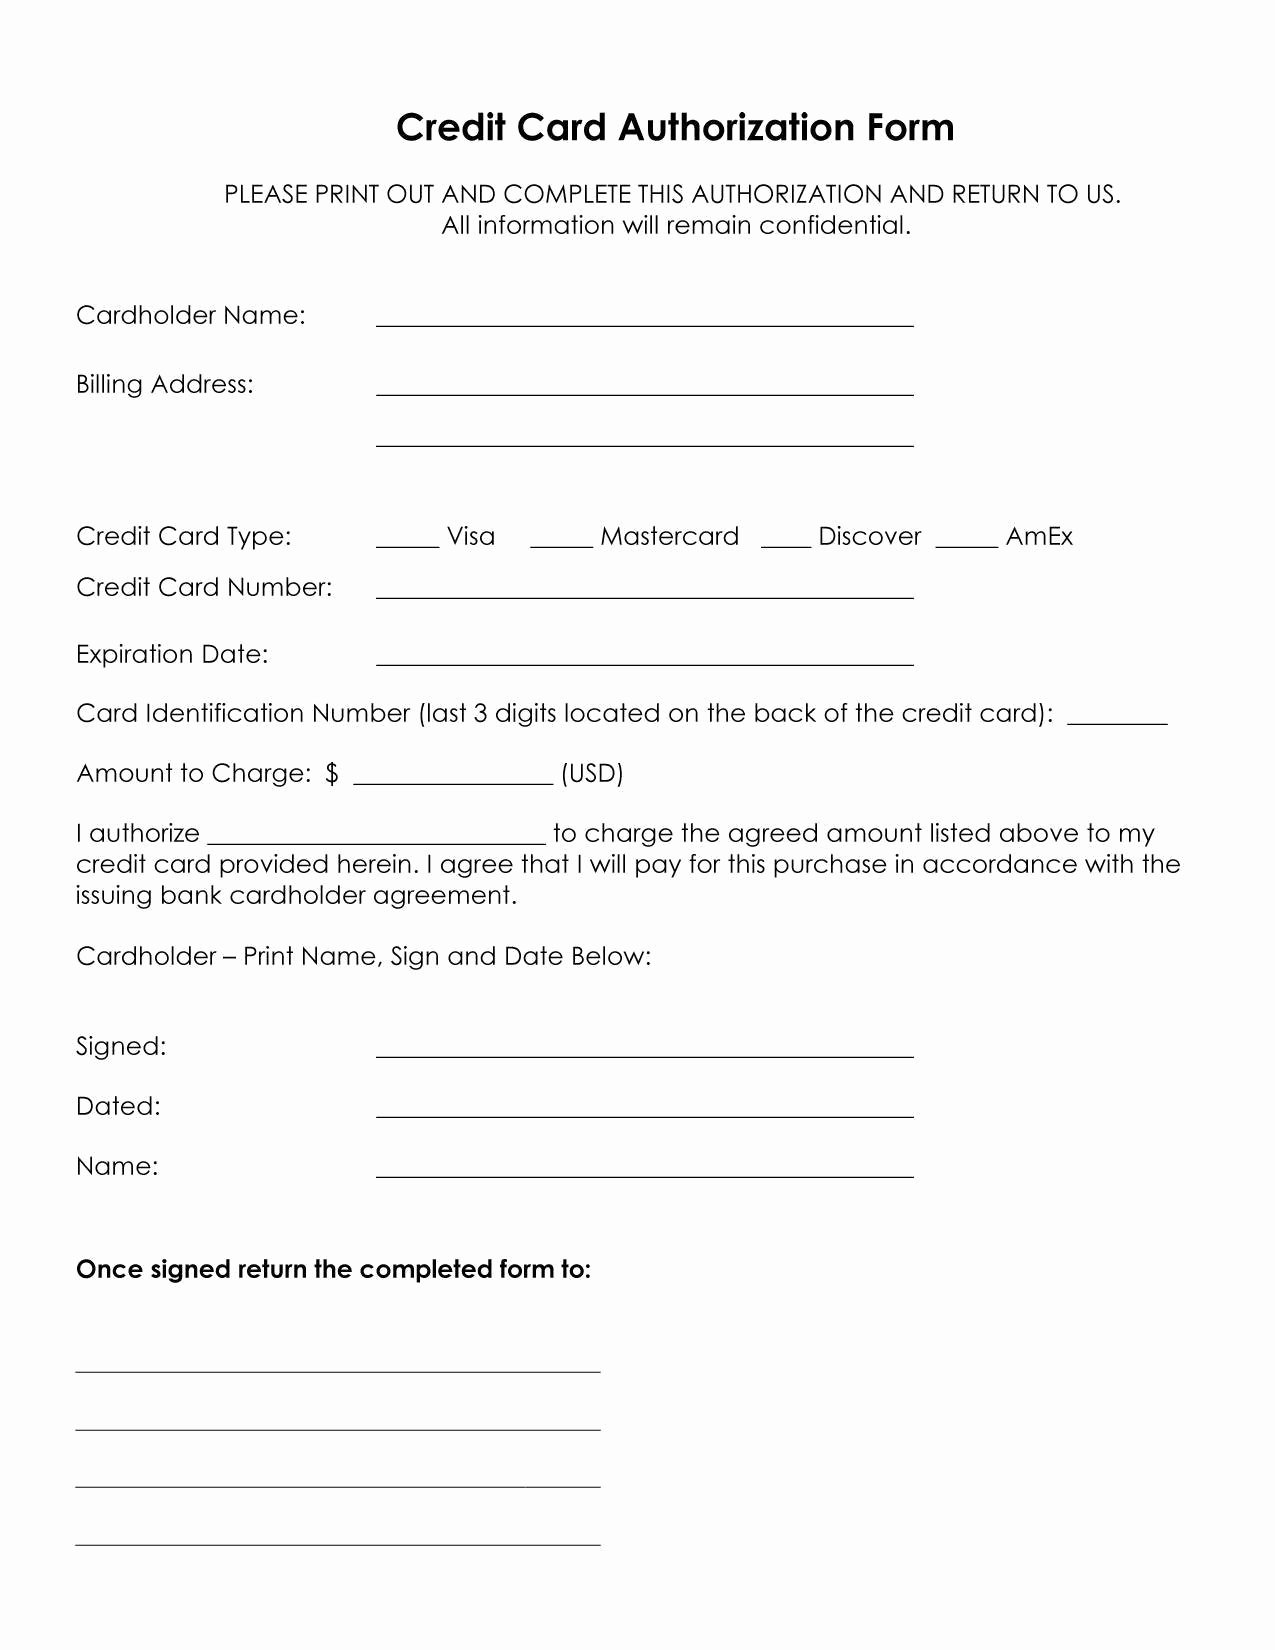 Back Charge Construction Lovely Authorization for Credit Card Use Free forms Download